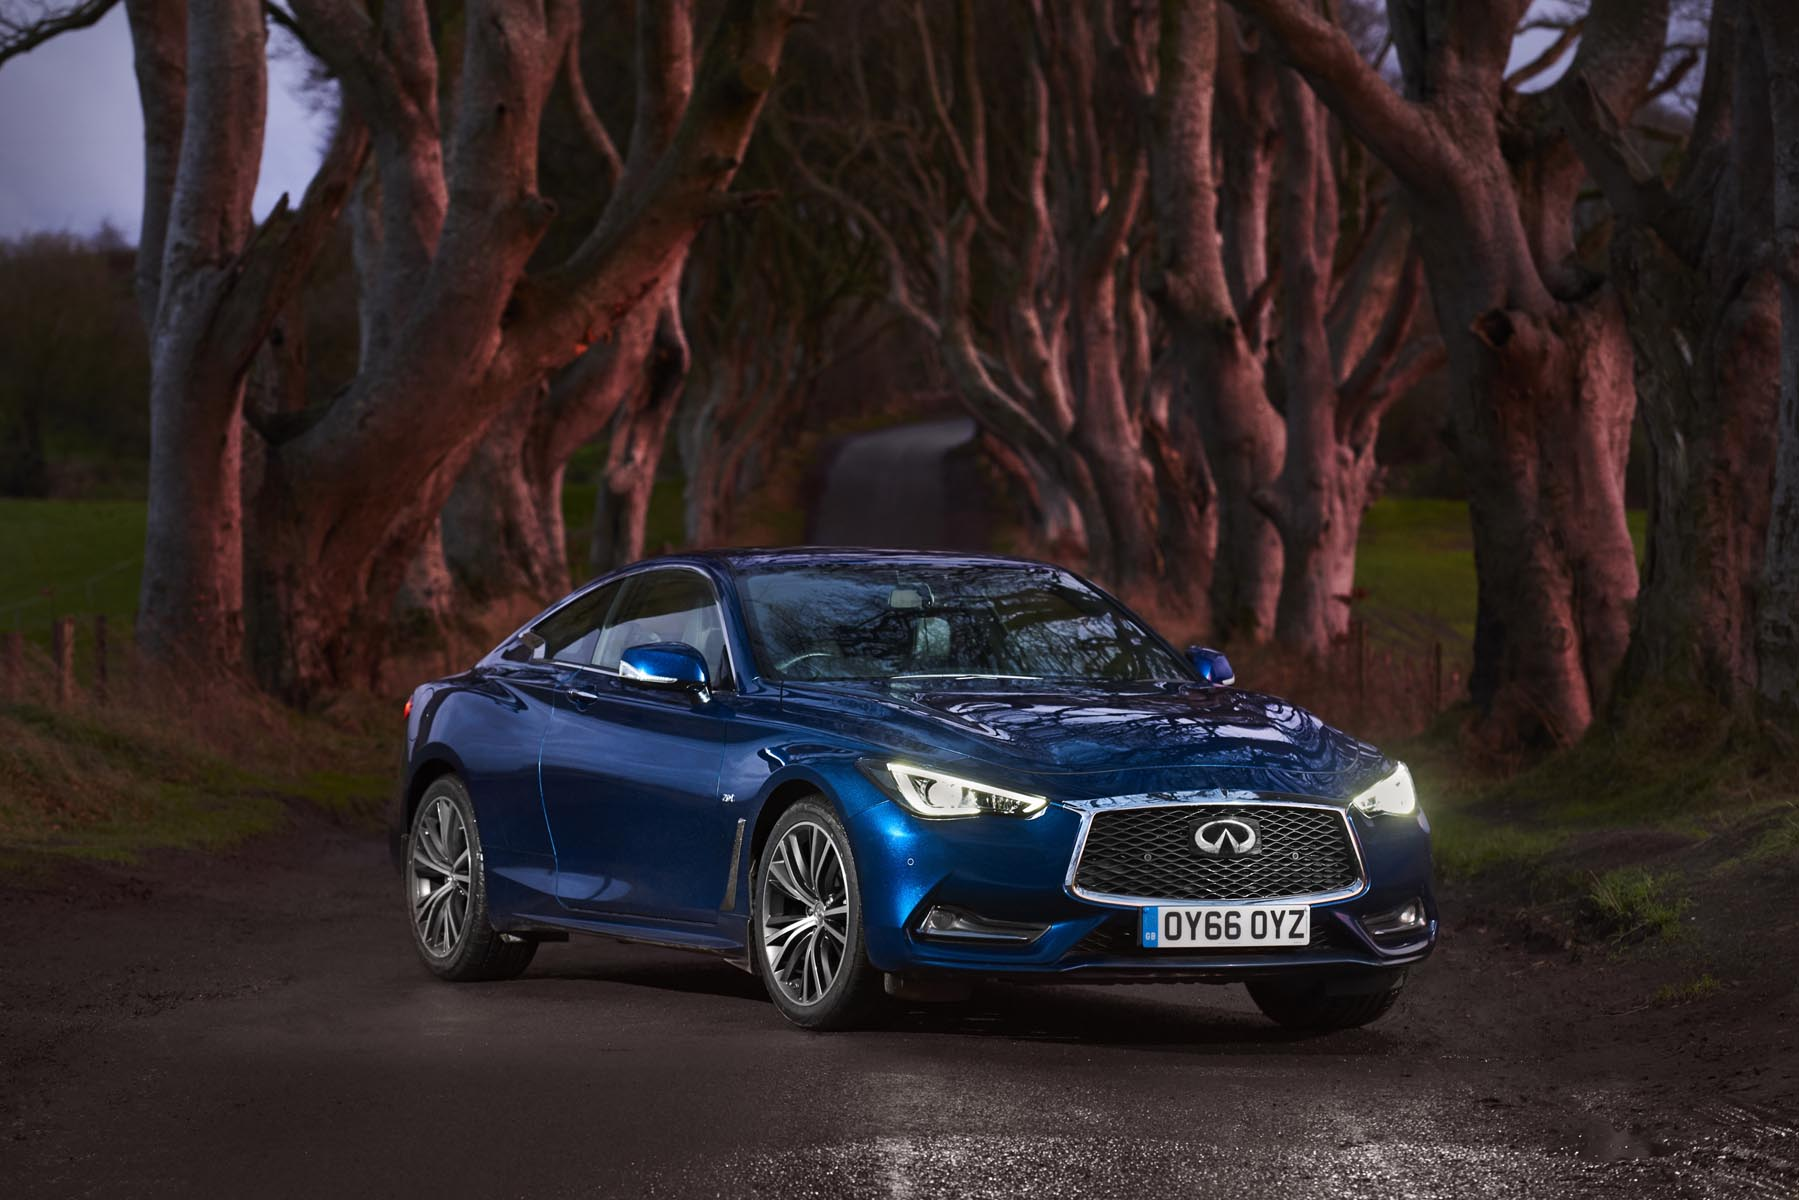 Used Cars Ni: LUXURY TWO DOOR PERFORMANCE FROM INFINITI...